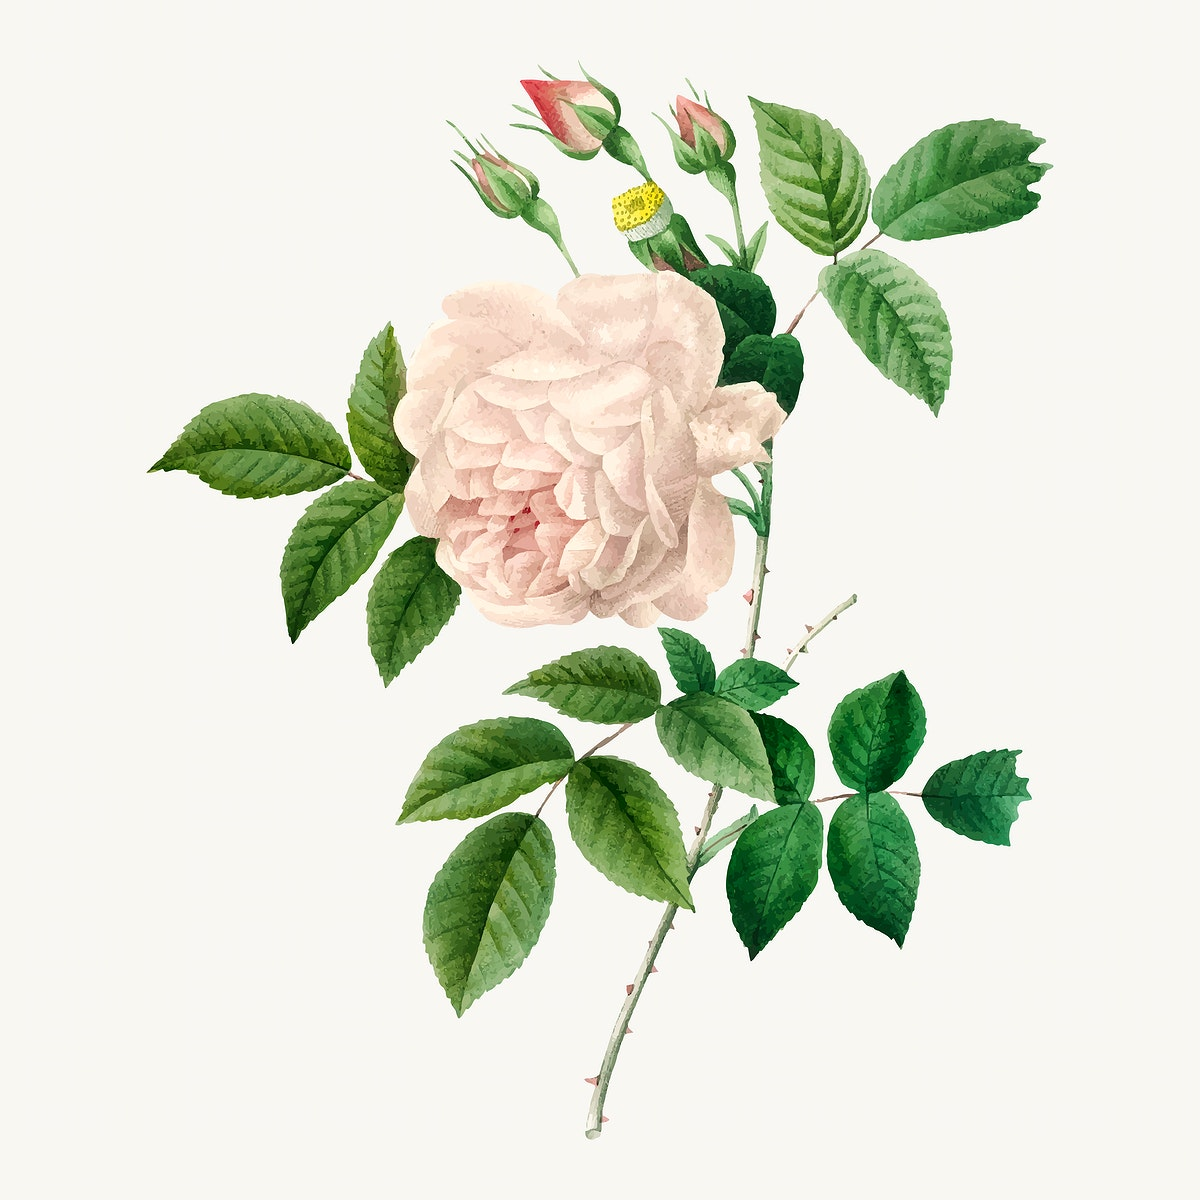 White rose botanical  vector, remixed from artworks by Pierre-Joseph Redouté